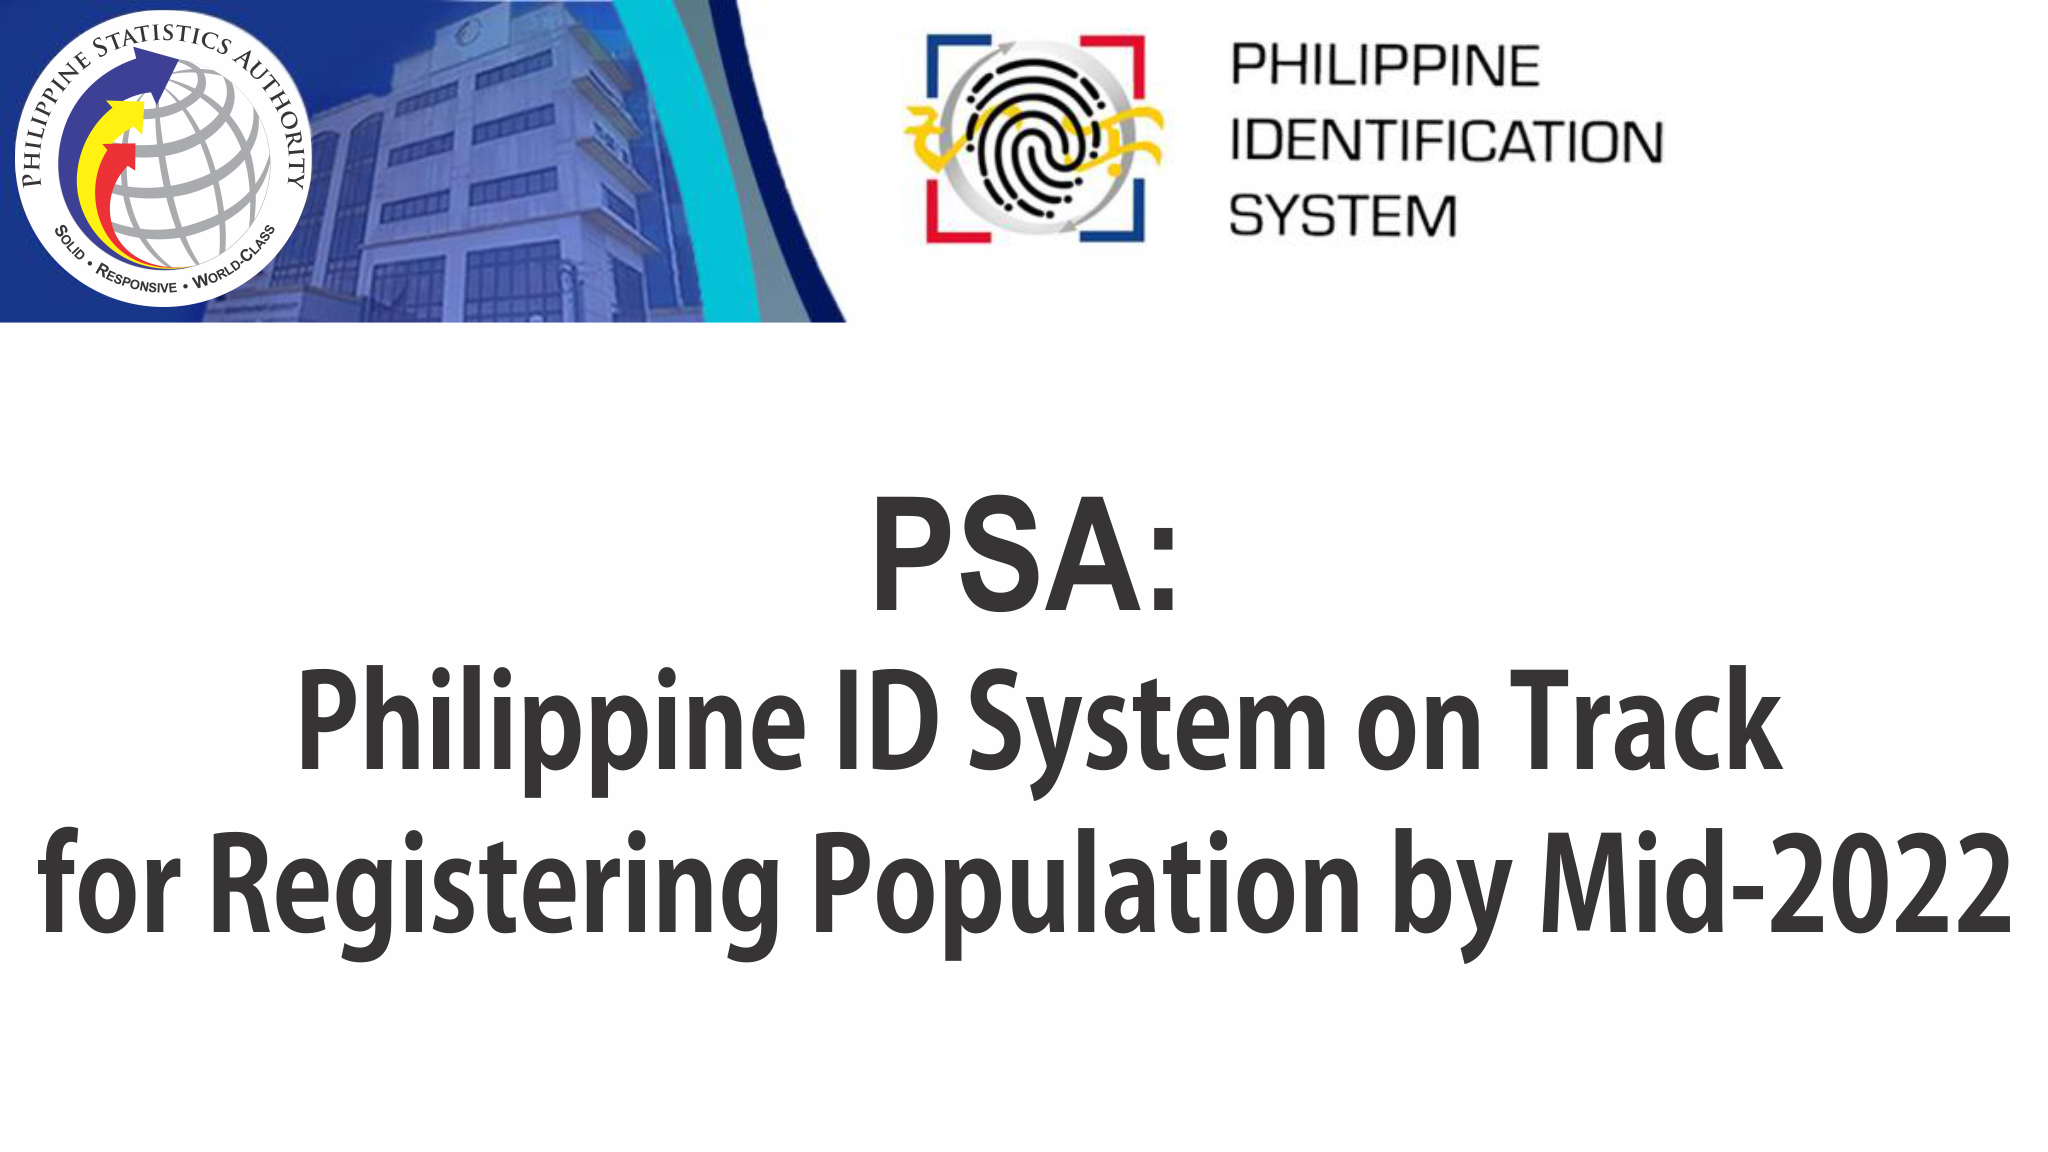 PSA: Philippine ID System on Track for Registering Population by Mid-2022